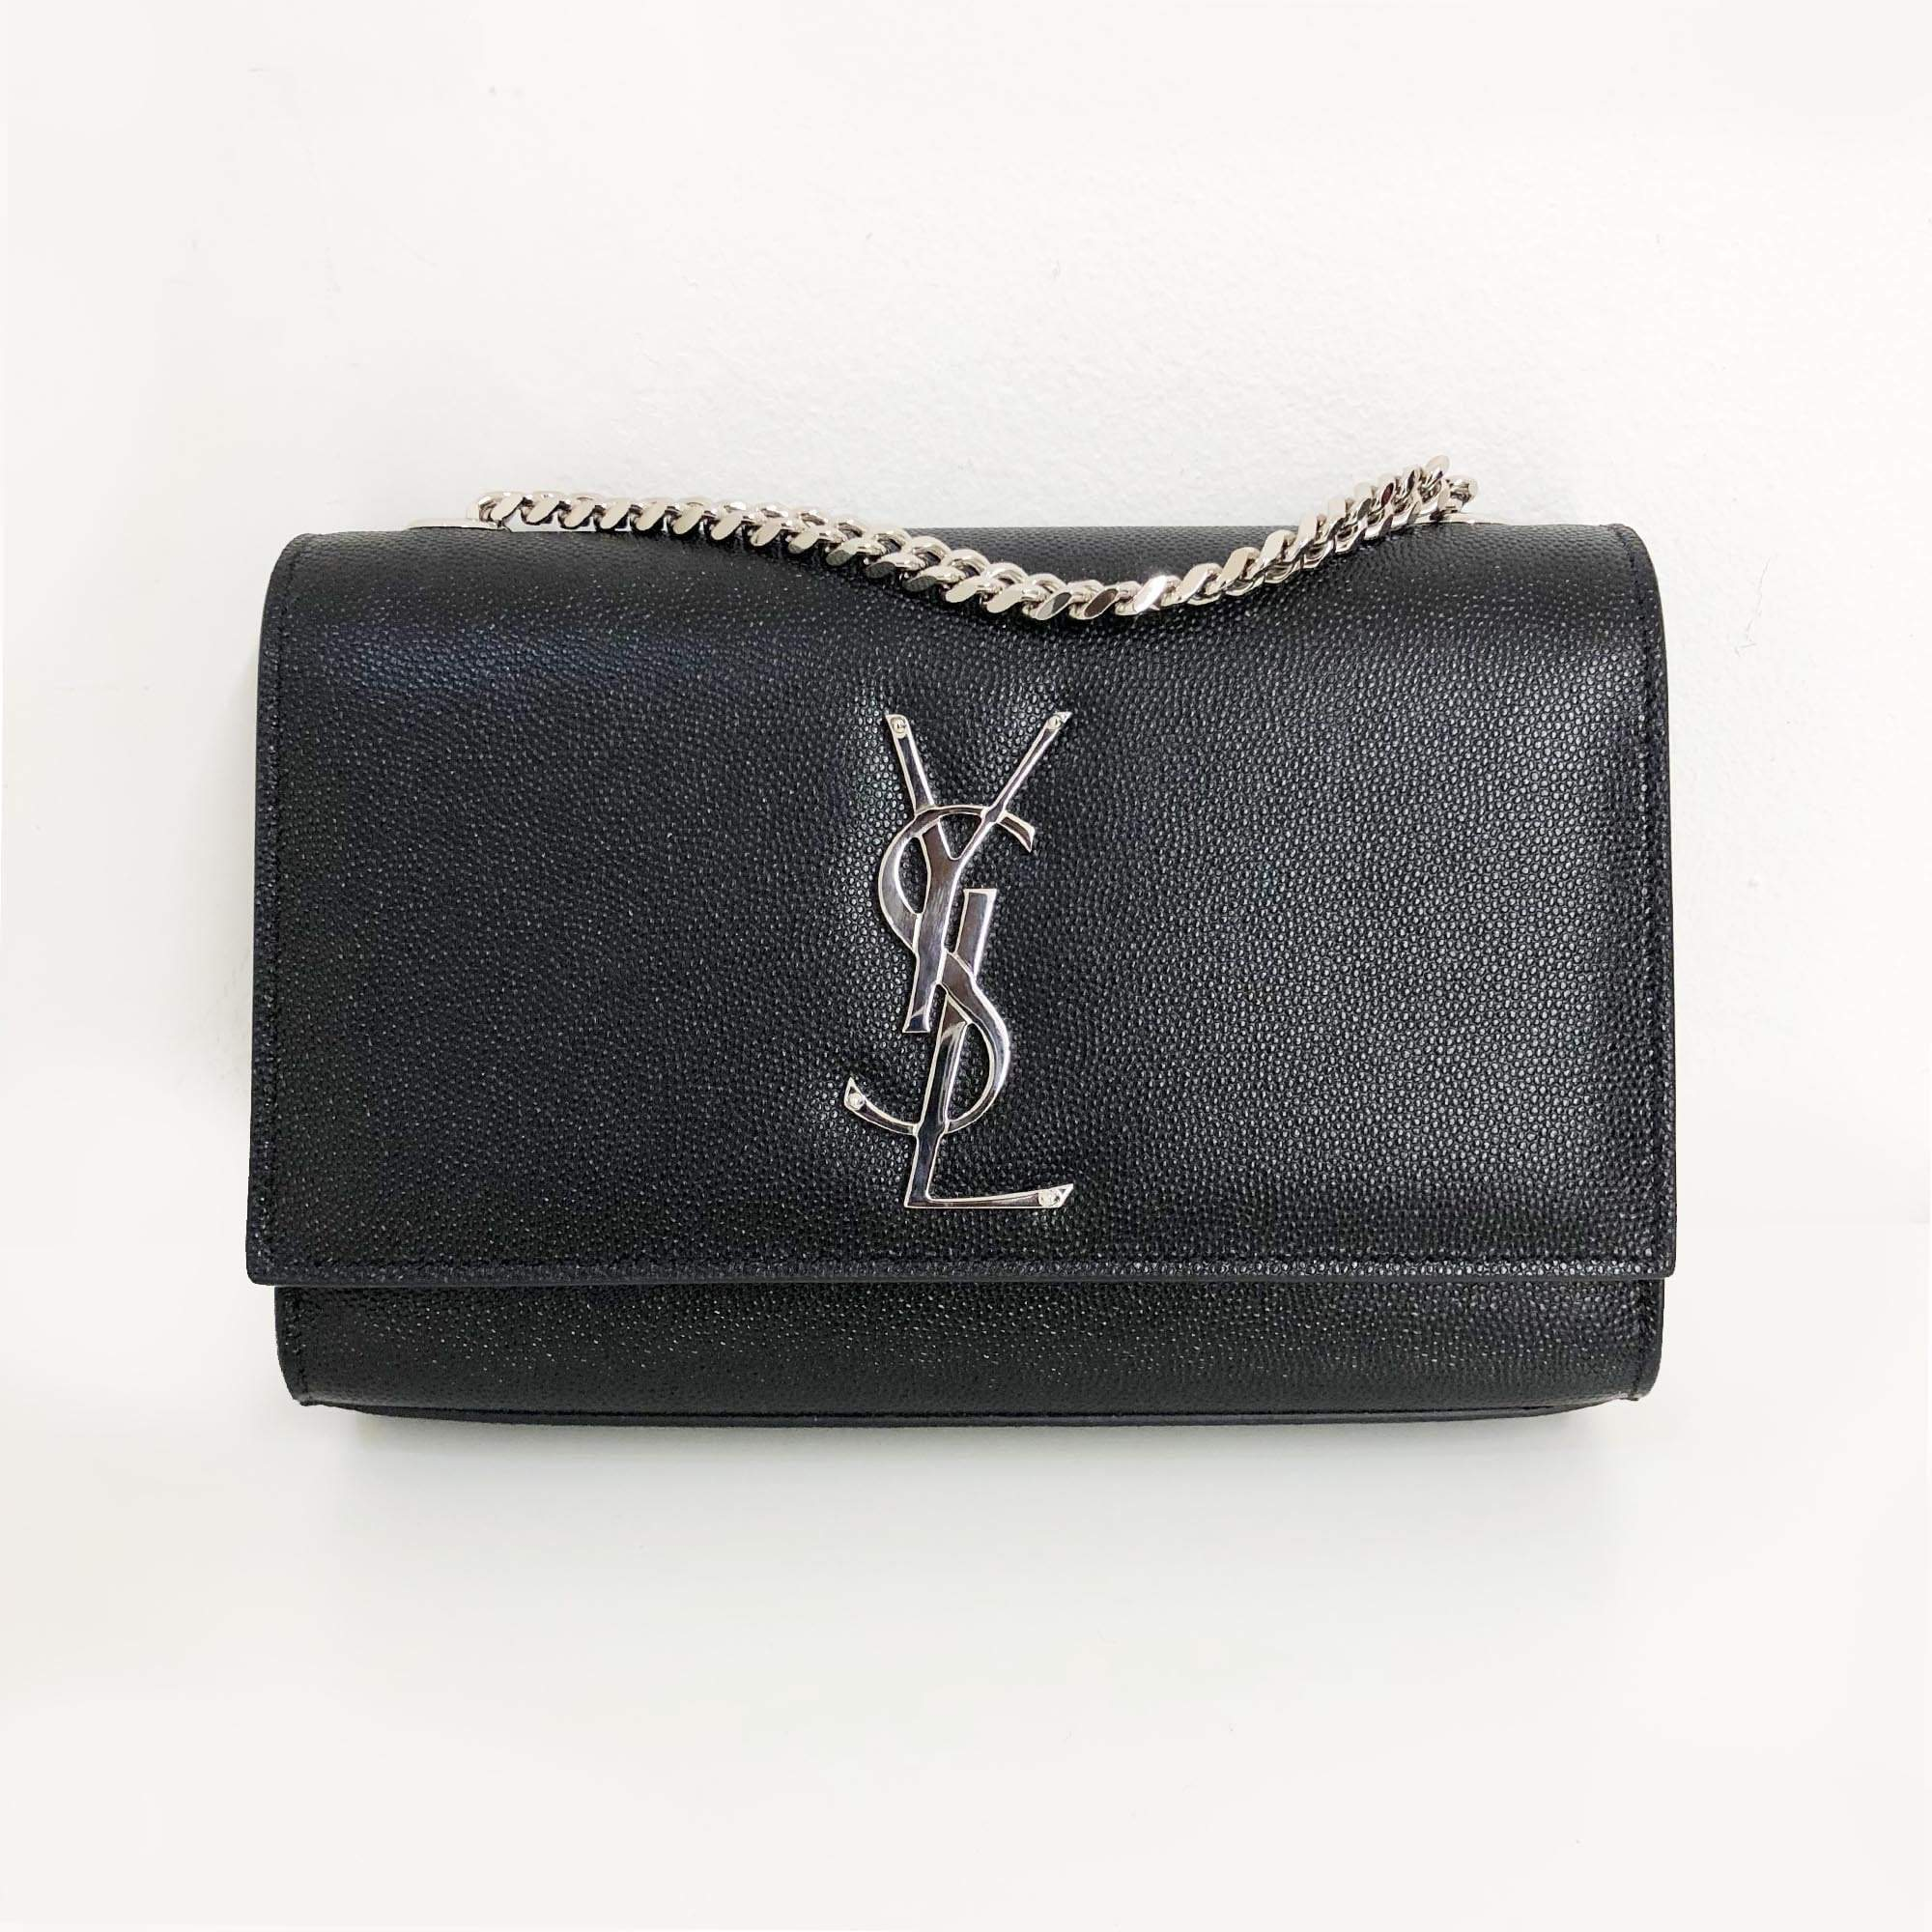 251e29871fe Yves Saint Laurent Kate Small Monogram shoulder bag Silver Hardware –  Garderobe